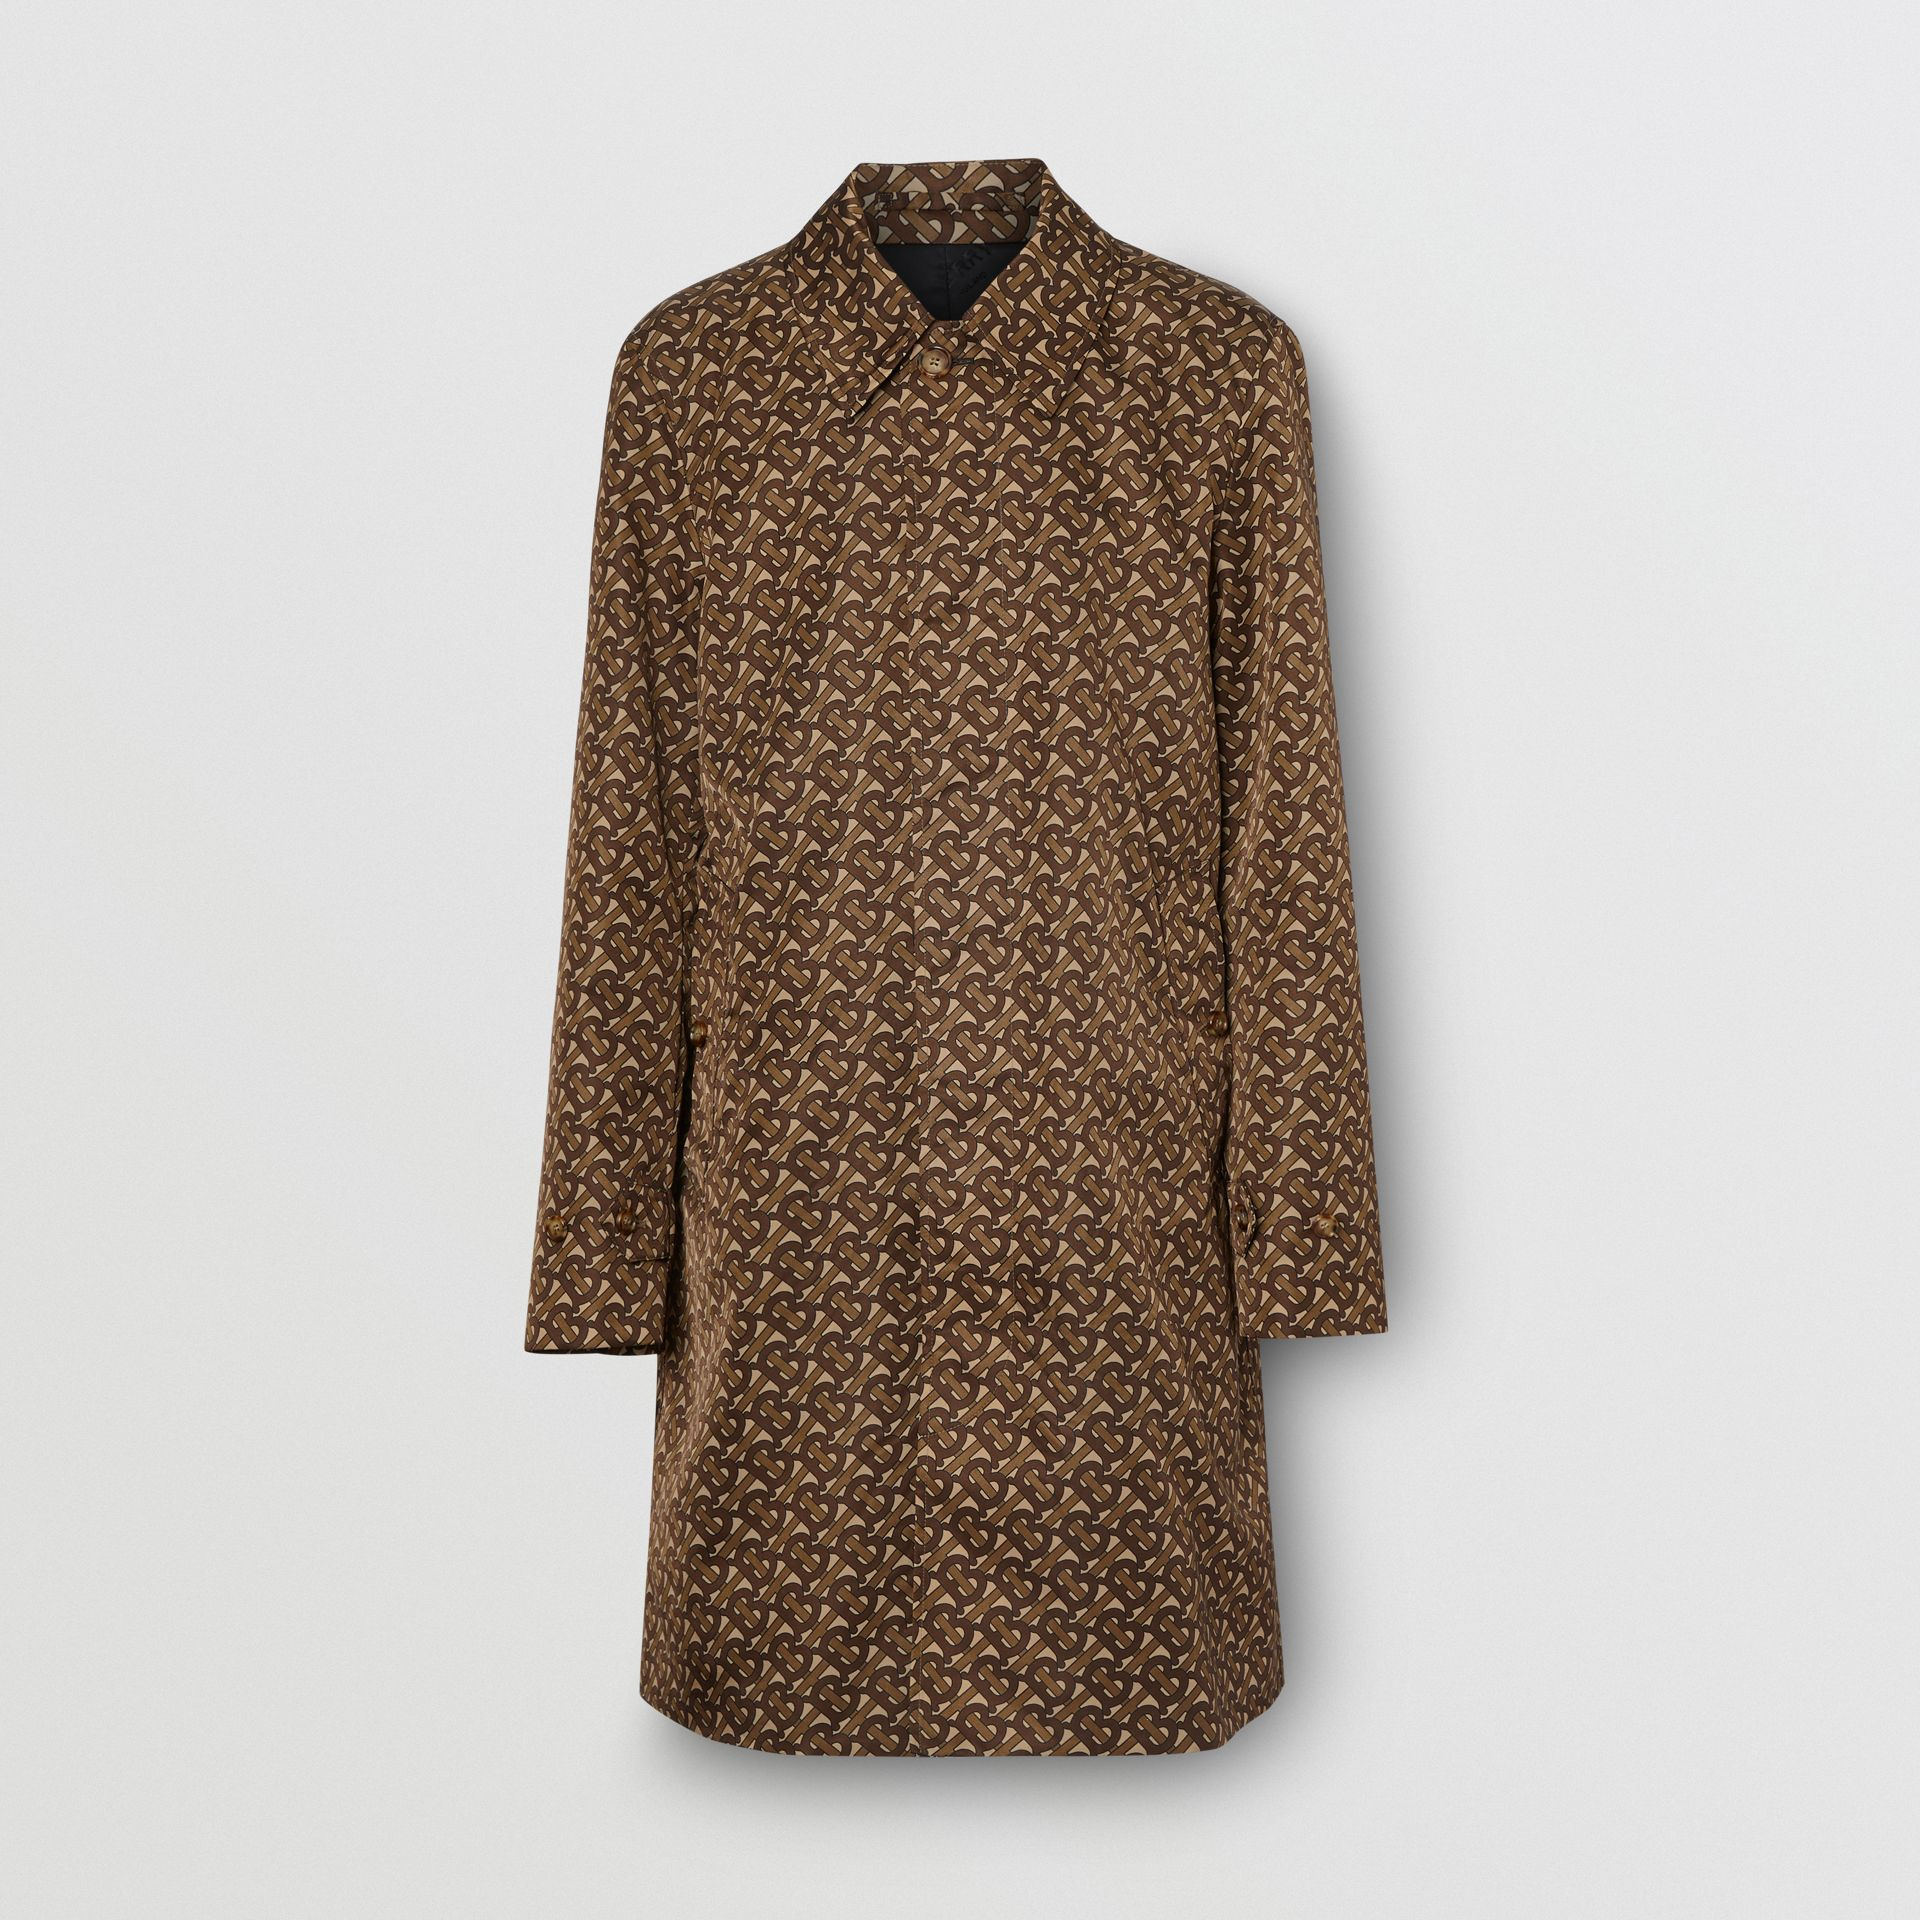 Monogram Stripe Print Nylon Car Coat in Bridle Brown - Men | Burberry United Kingdom - gallery image 3